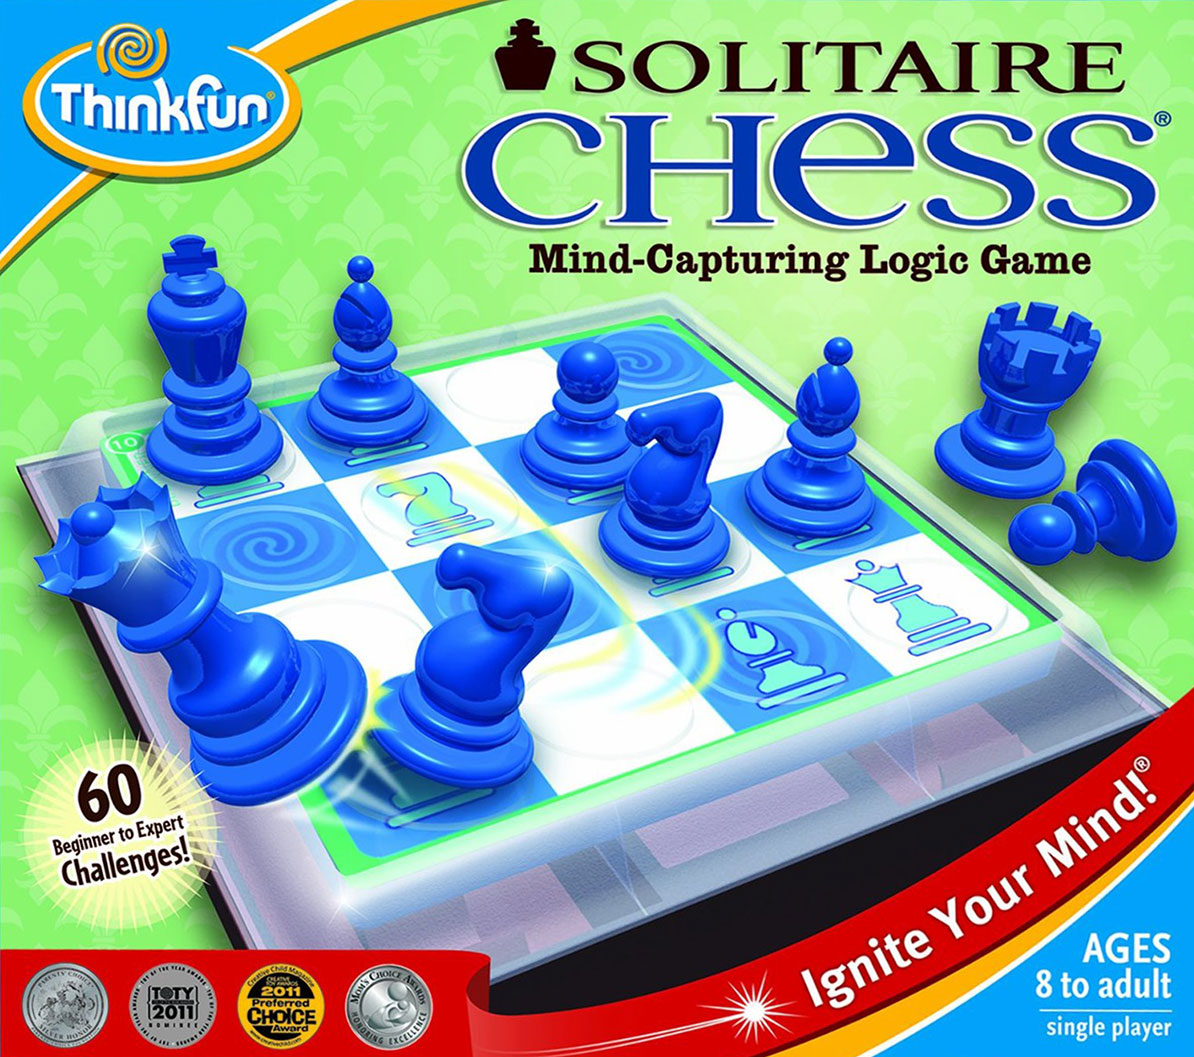 Solitaire Chess Mind-Capturing Logic Game by ThinkFun solitaire-chess